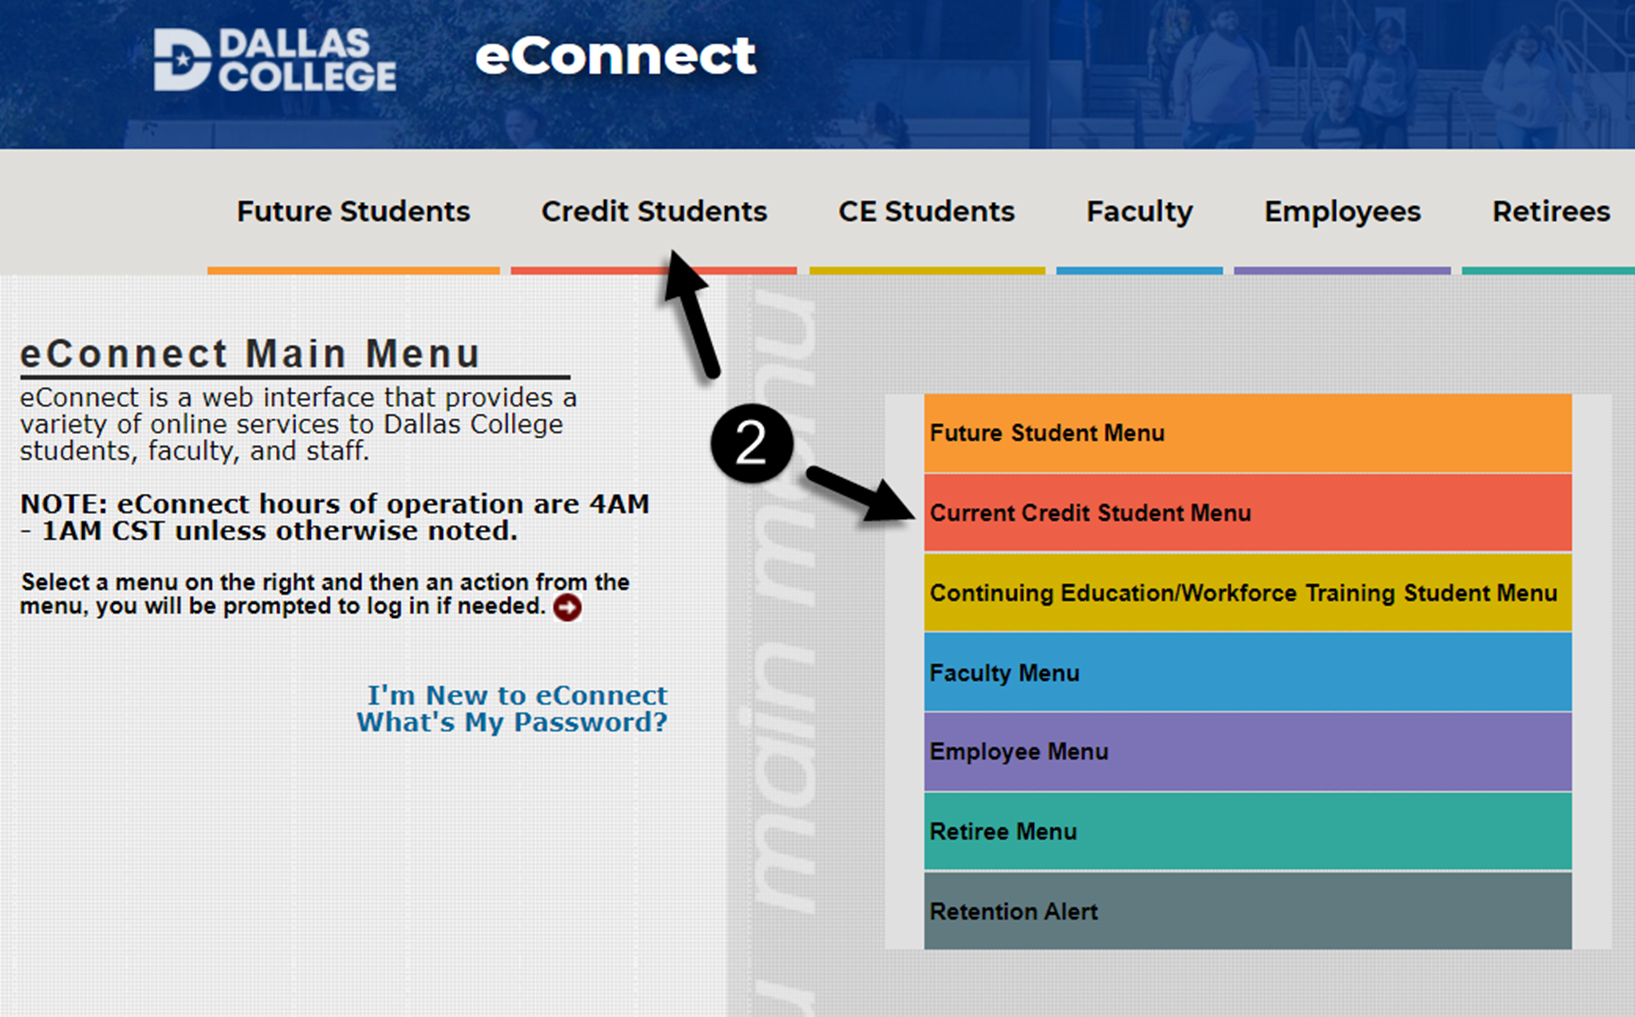 Screenshot of the eConnect home page with Current Credit Student Menu highlighted.